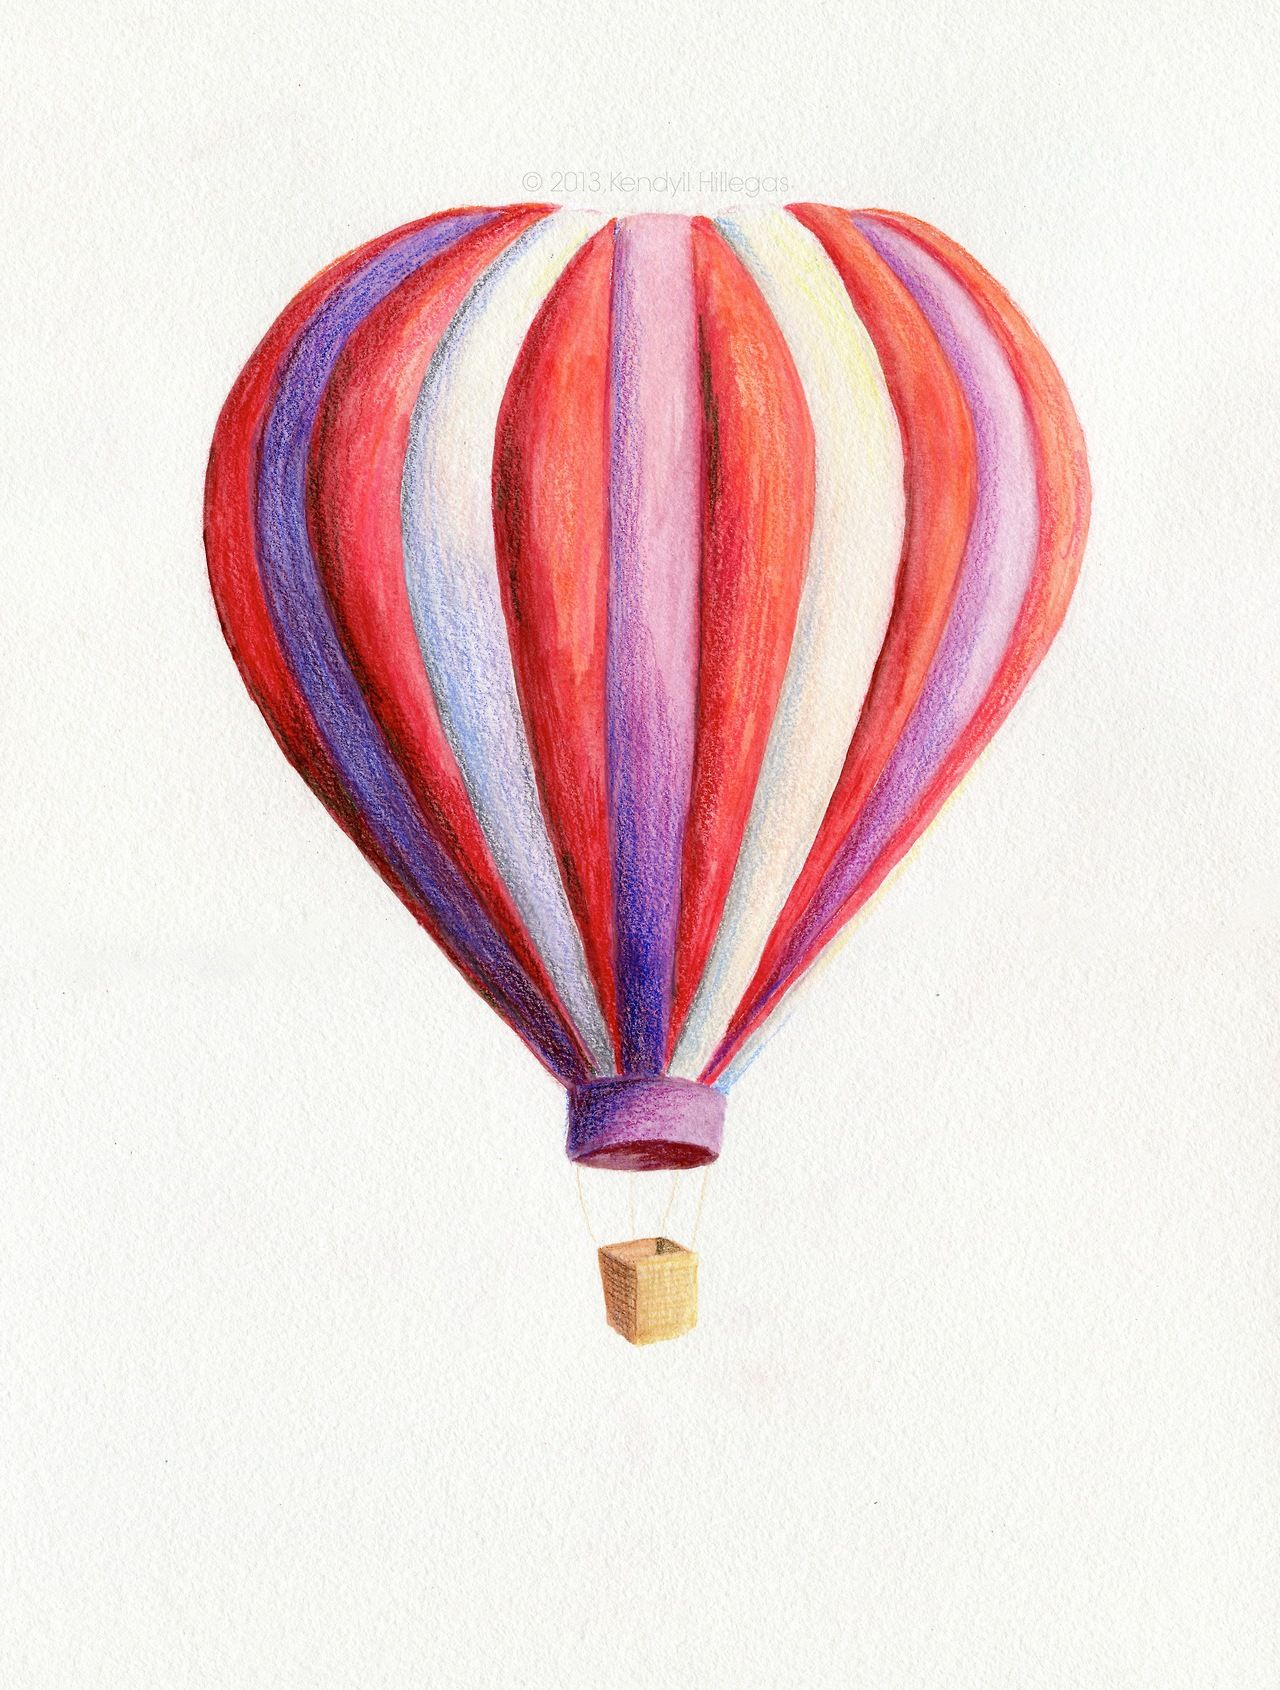 1280x1690 Hot Air Balloon Drawing Tumblr Mpbao9pypv1resk48o1 1280.jpg (1280